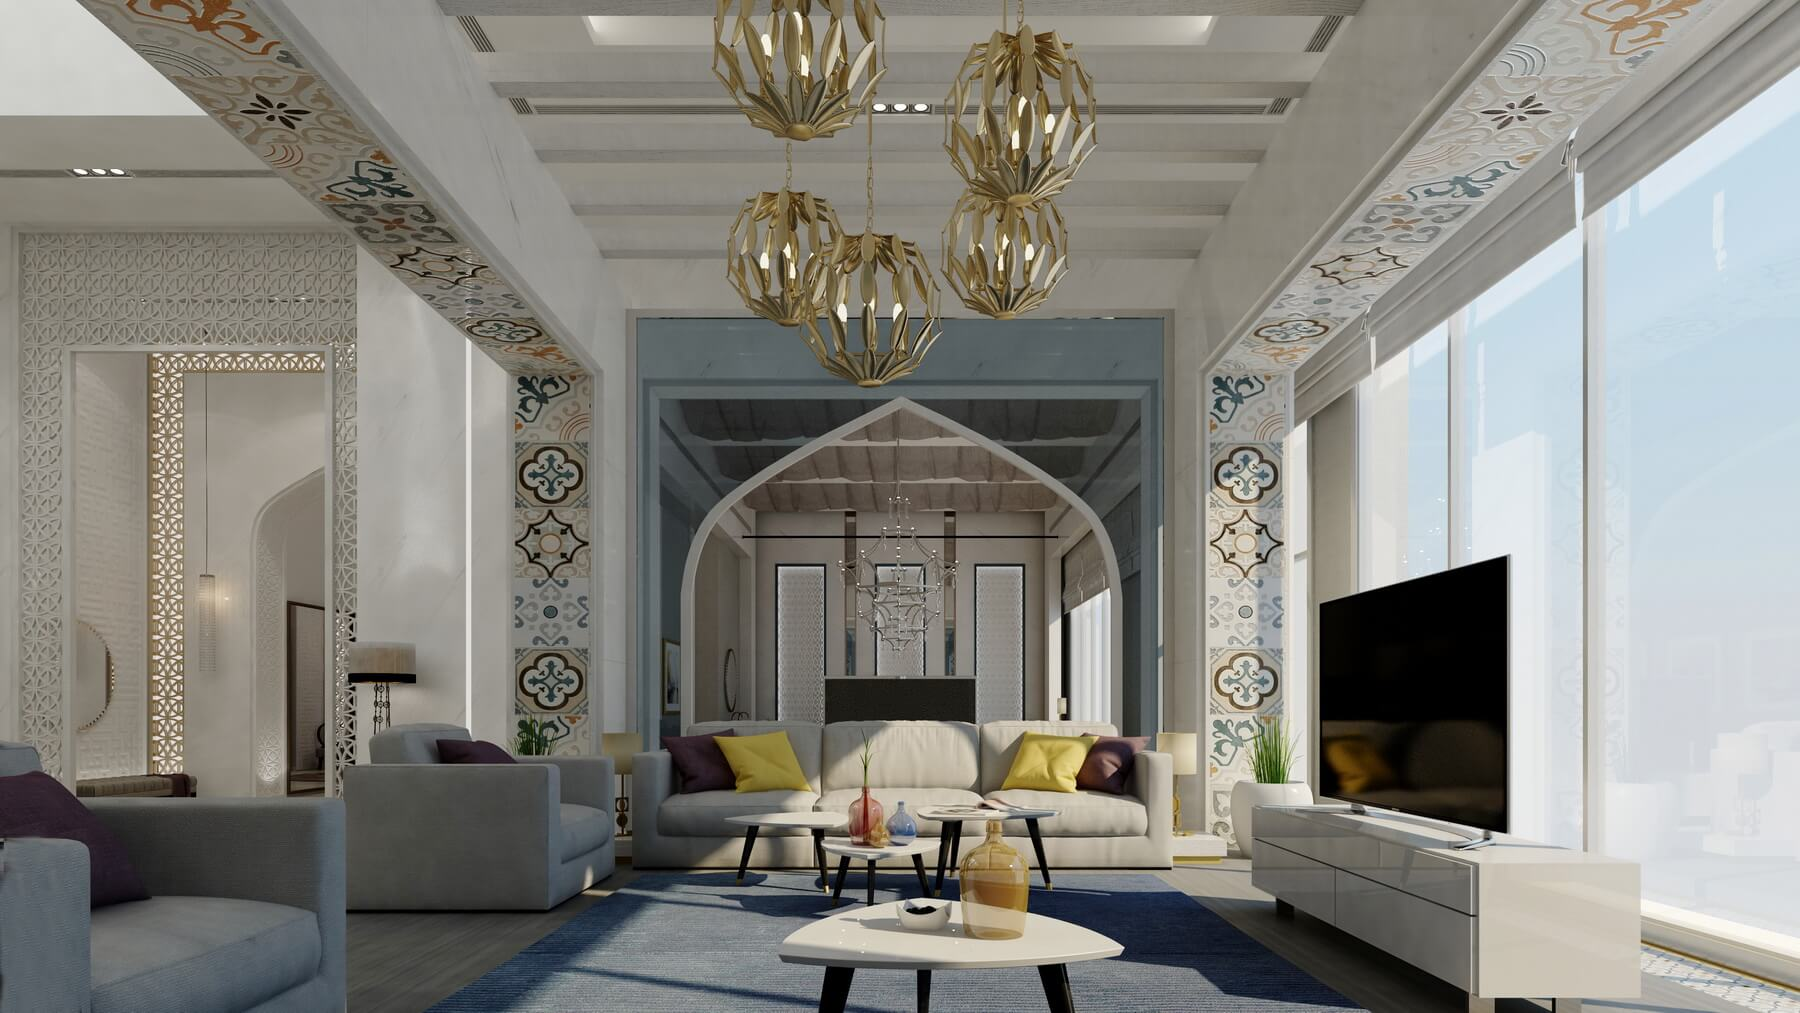 Arabic Décor what you need to know! 2 arabic décor Arabic Décor: What You Need To Know! Arabic D  cor what you need to know 2